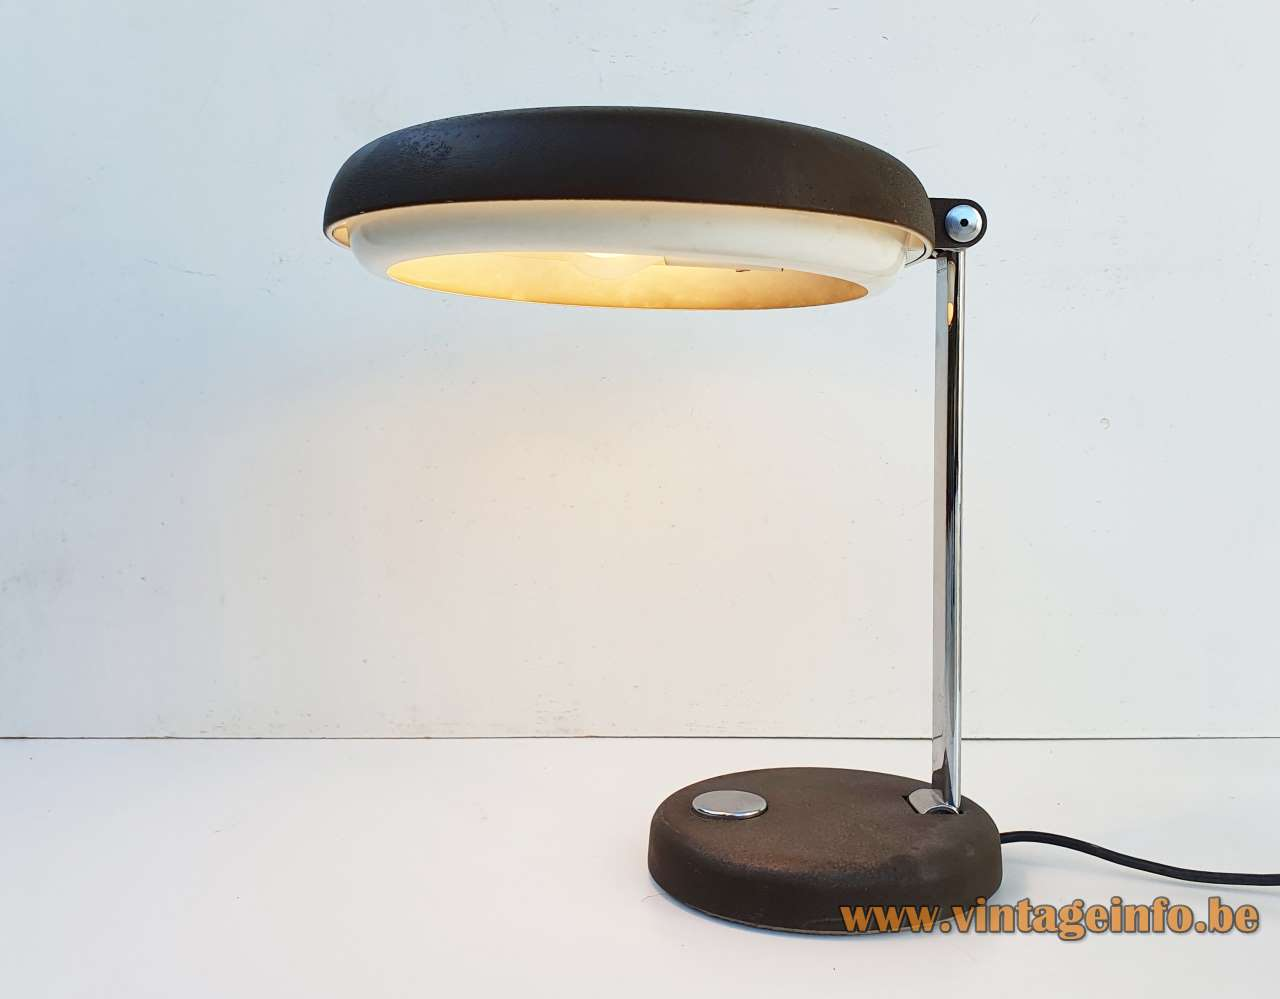 Hillebrand UFO desk lamp design: Heinz Pfaender black base & lampshade chrome slat 1970s Germany E27 sockets